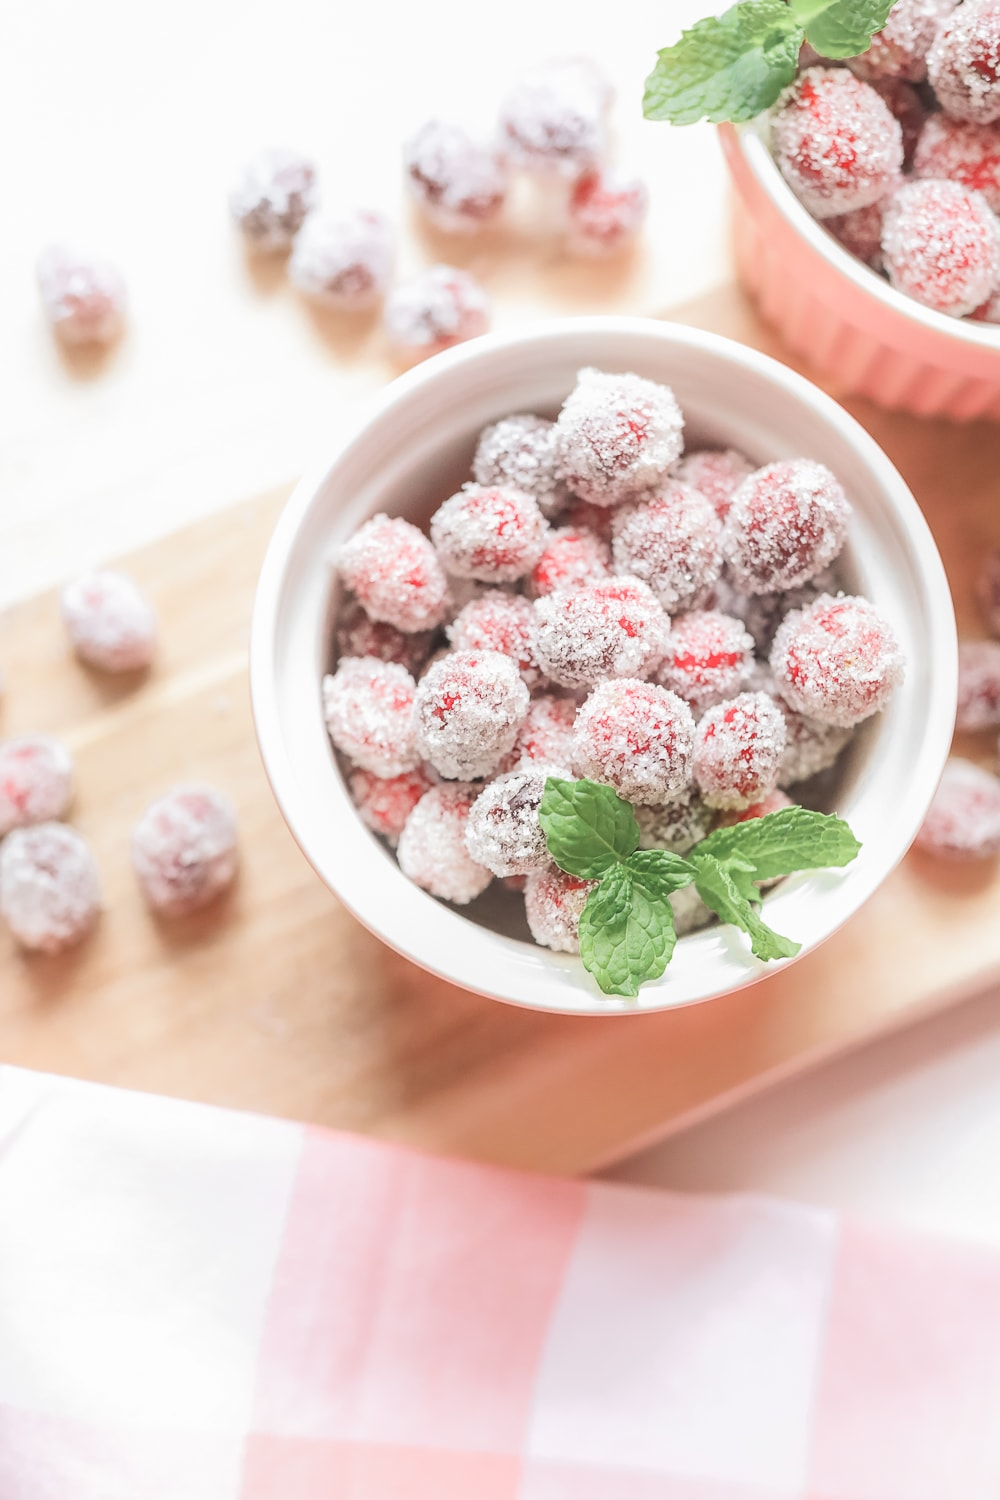 Sugared cranberries recipe by blogger Stephanie Ziajka on Diary of a Debutante